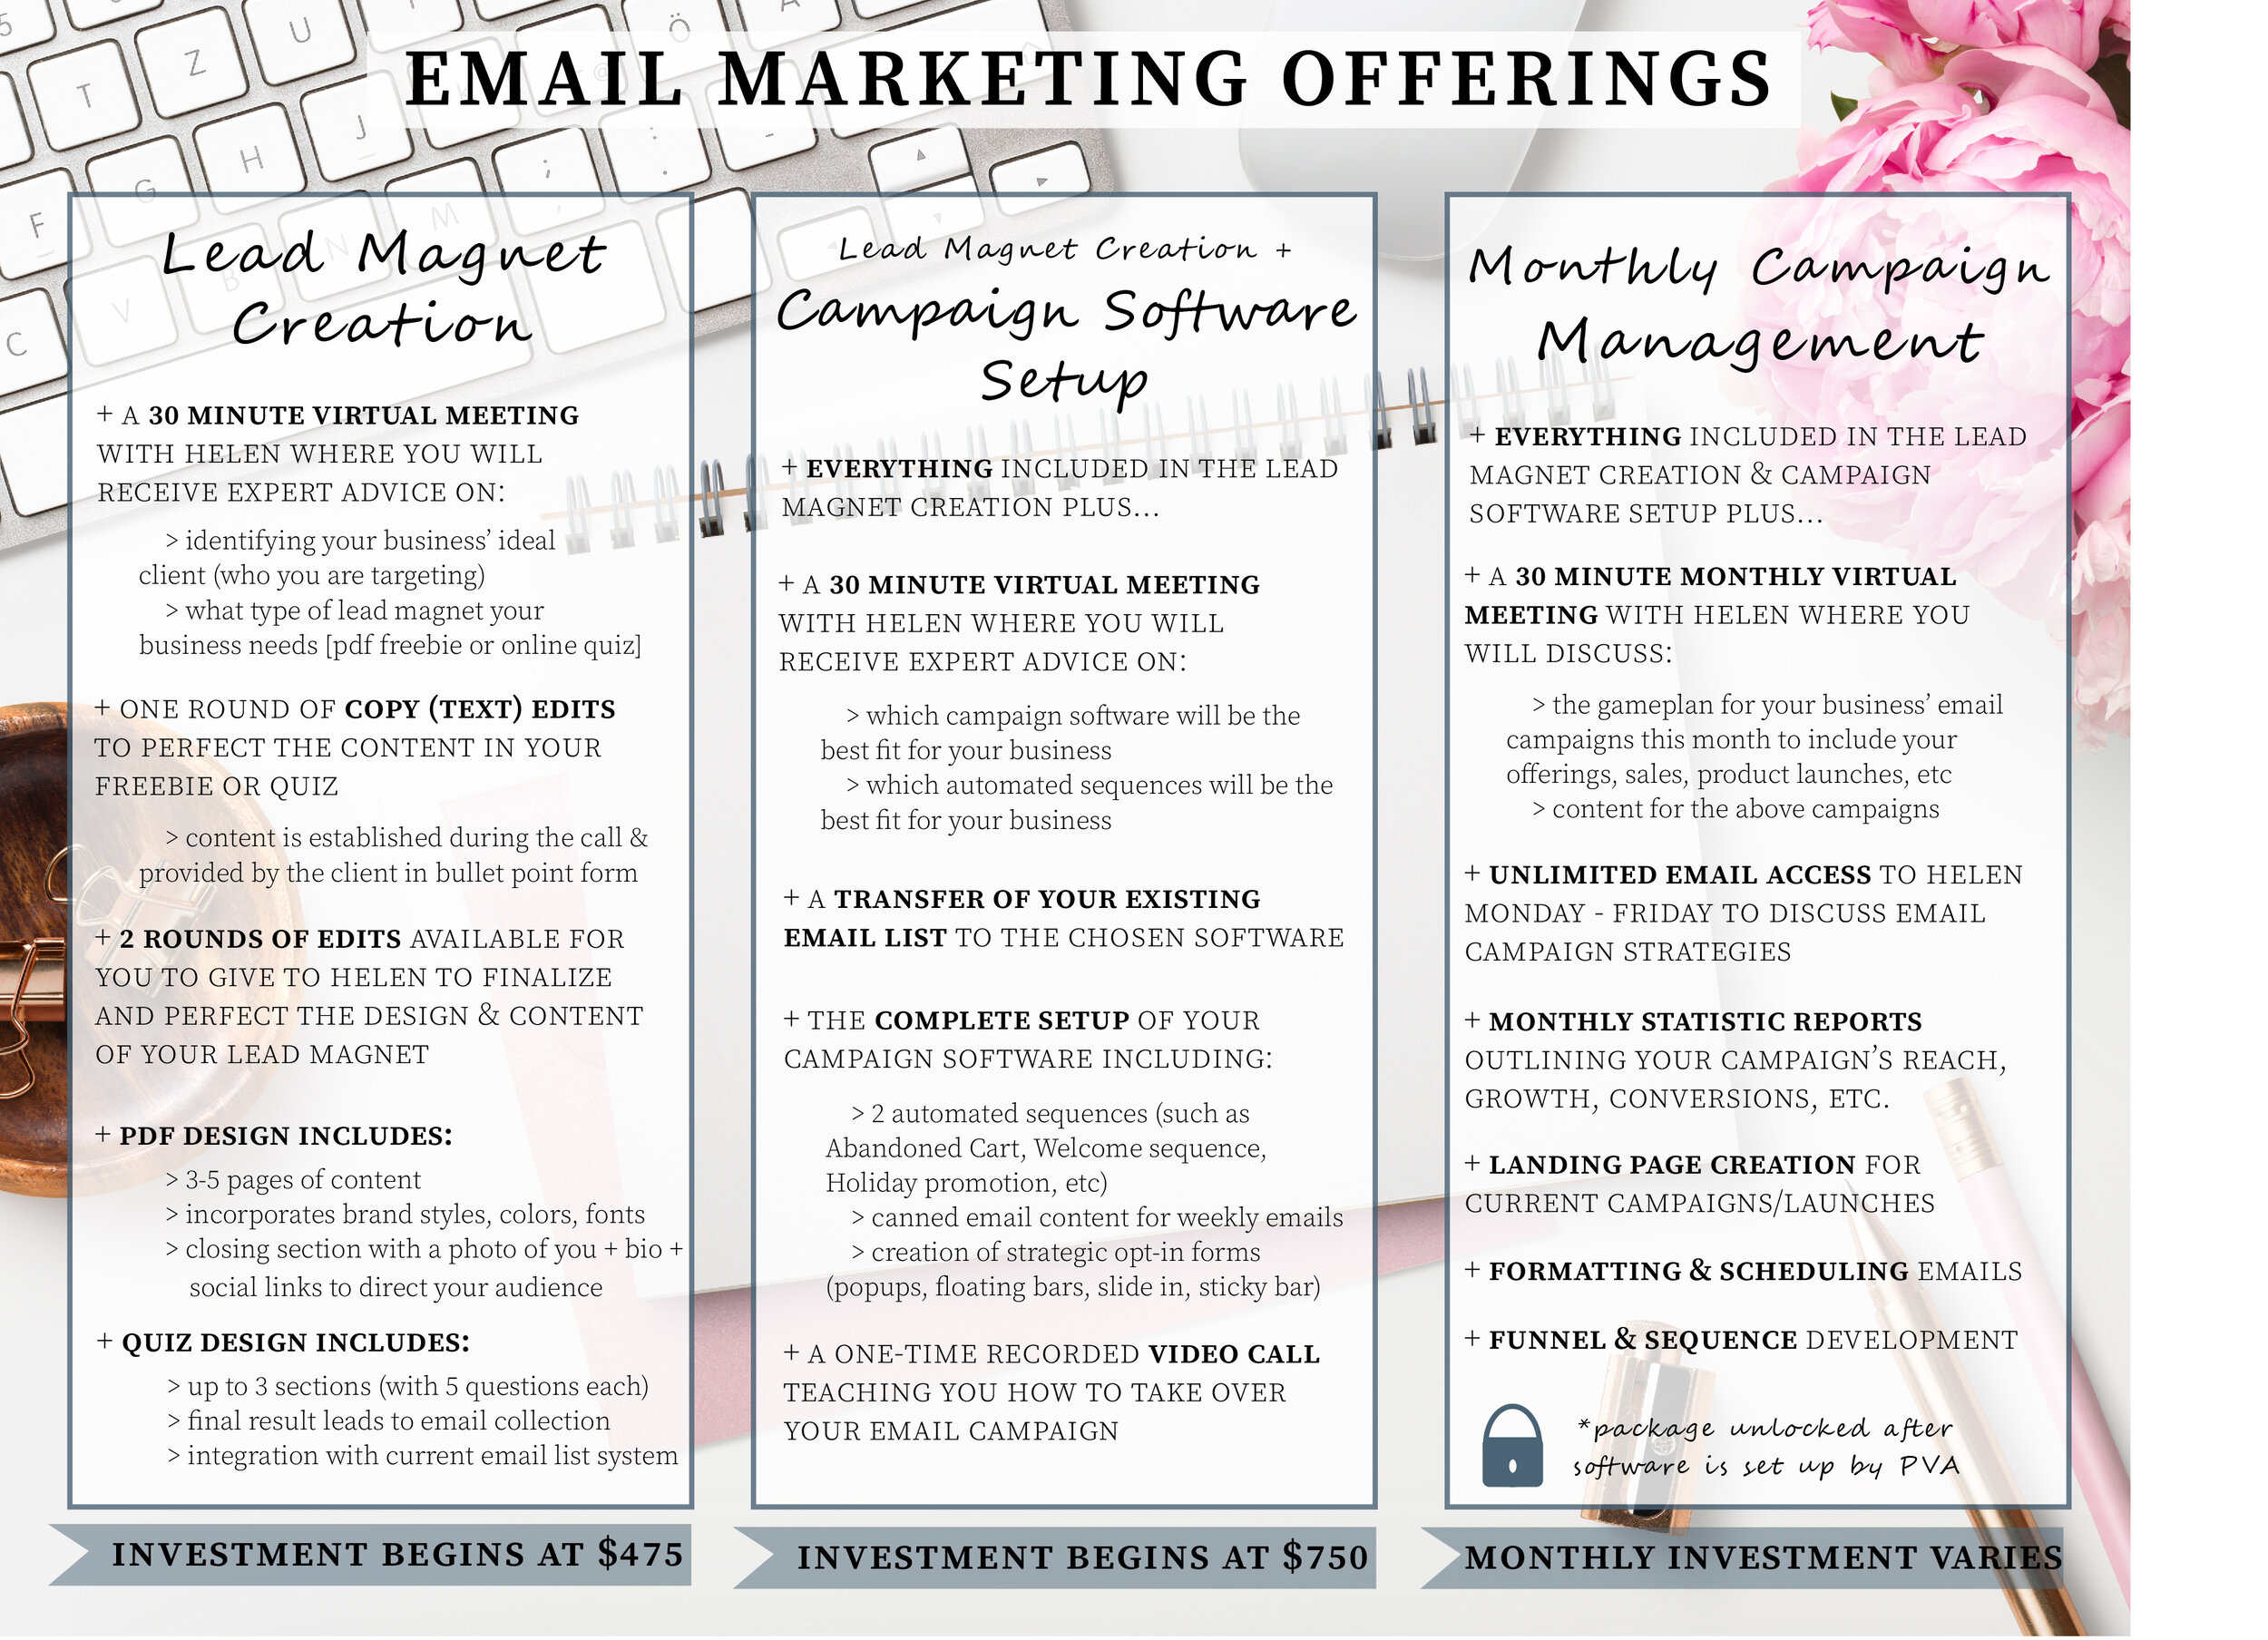 email marketing offerings.jpg